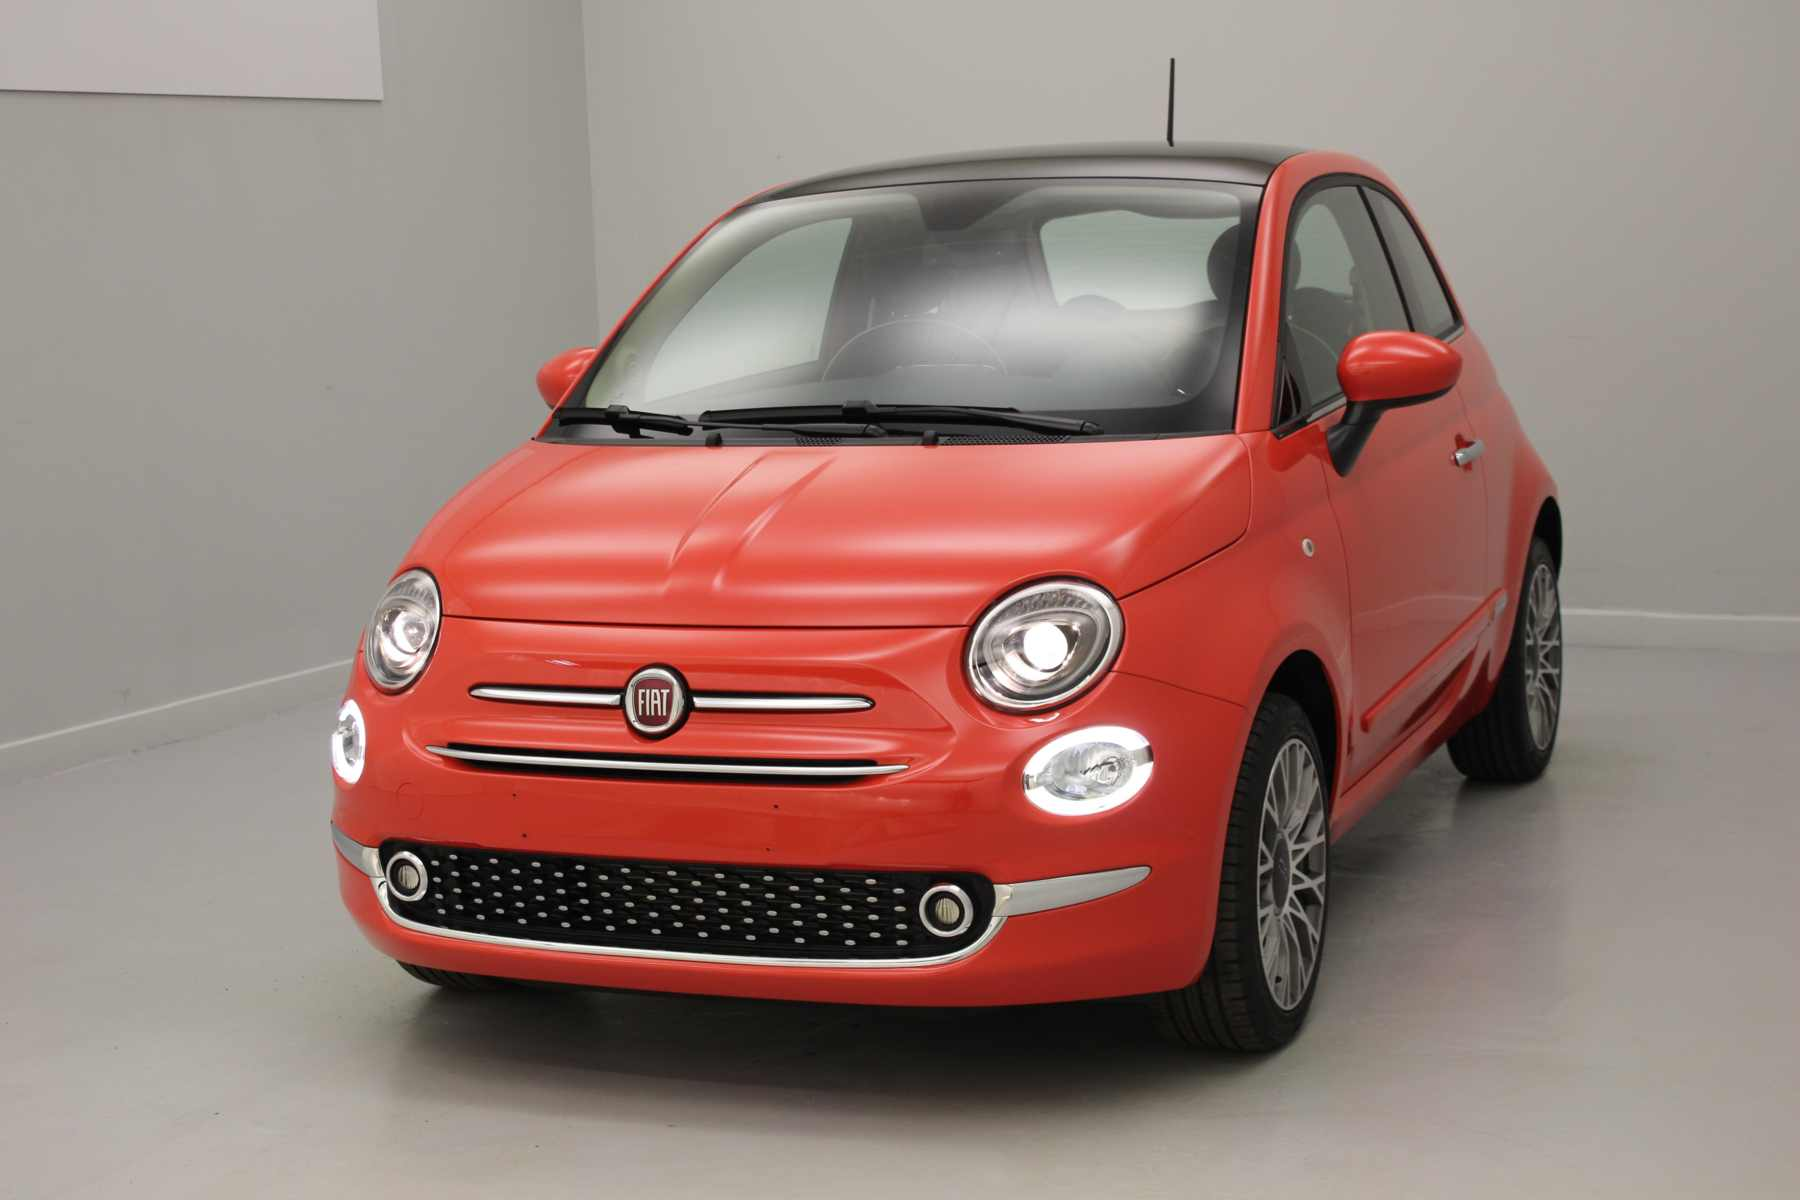 FIAT 500 1.2 69 ch Lounge Eco Pack Coral Red + Climatisation automatique avec options